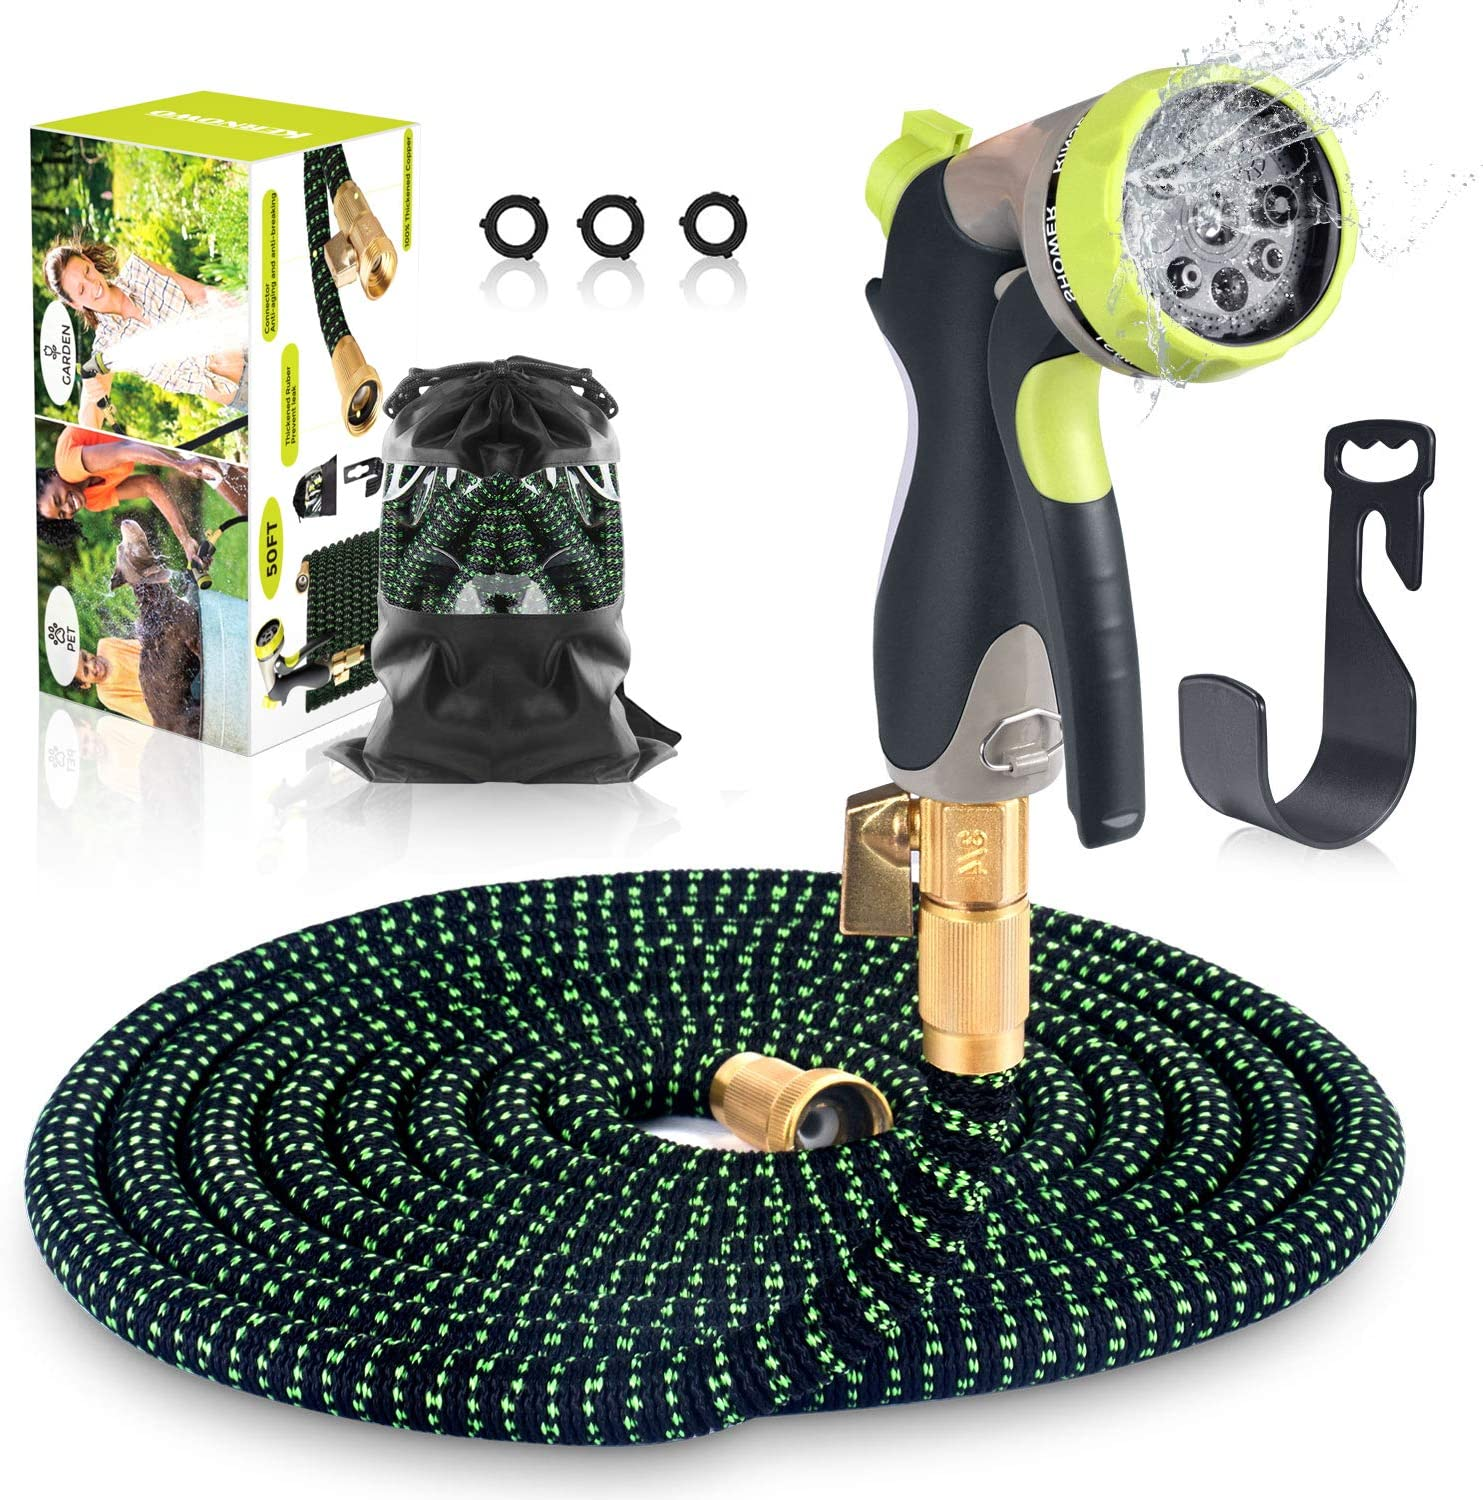 KERNOWO Expandable Garden Water Hose 50ft with 8 Function Nozzle,Solid Brass Fittings,Extra Leakproof Retractable Waterhose,Flexible Gardening Pocket Hoses with Spray Nozzle